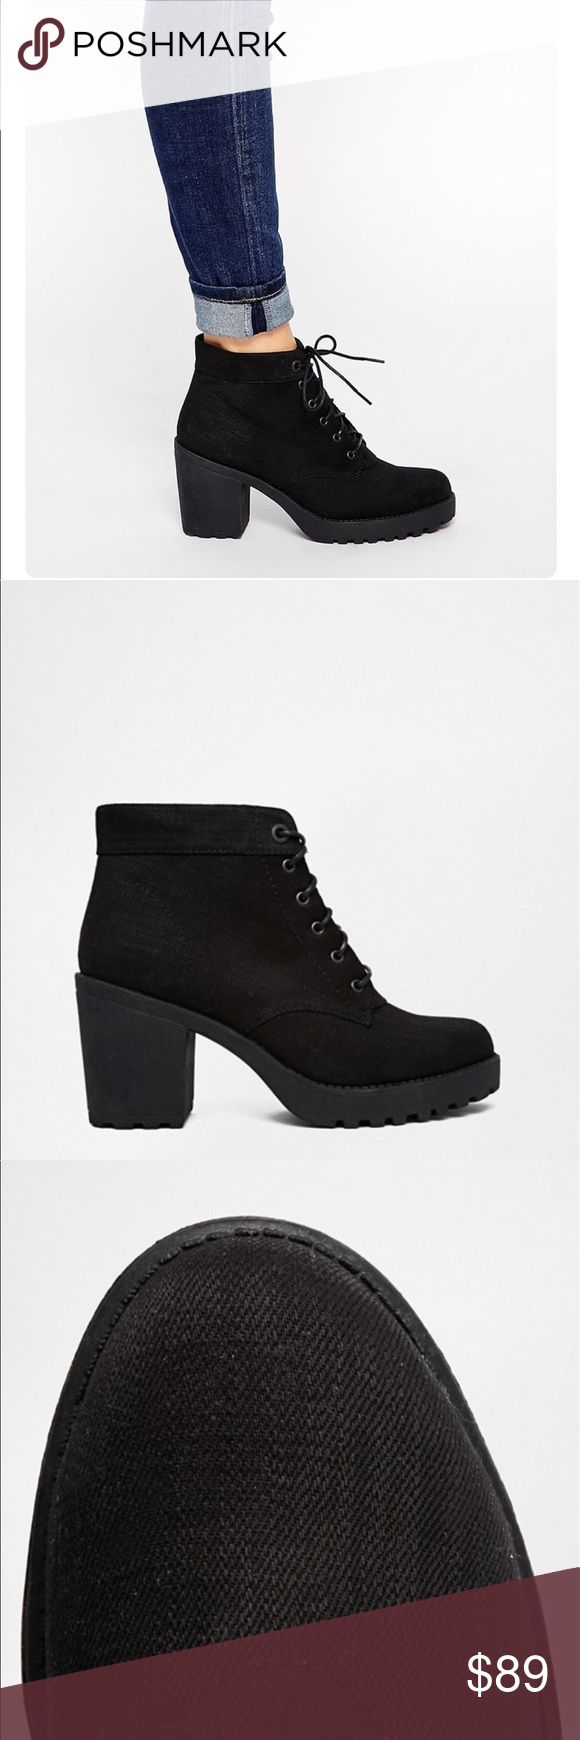 "ASOS Vagabond Boot Black bootie from ASOS. Worn once. Excellent condition. Sold out online. These are from England and say size ""39"". These fit a size 8 US. ASOS Shoes Ankle Boots & Booties"